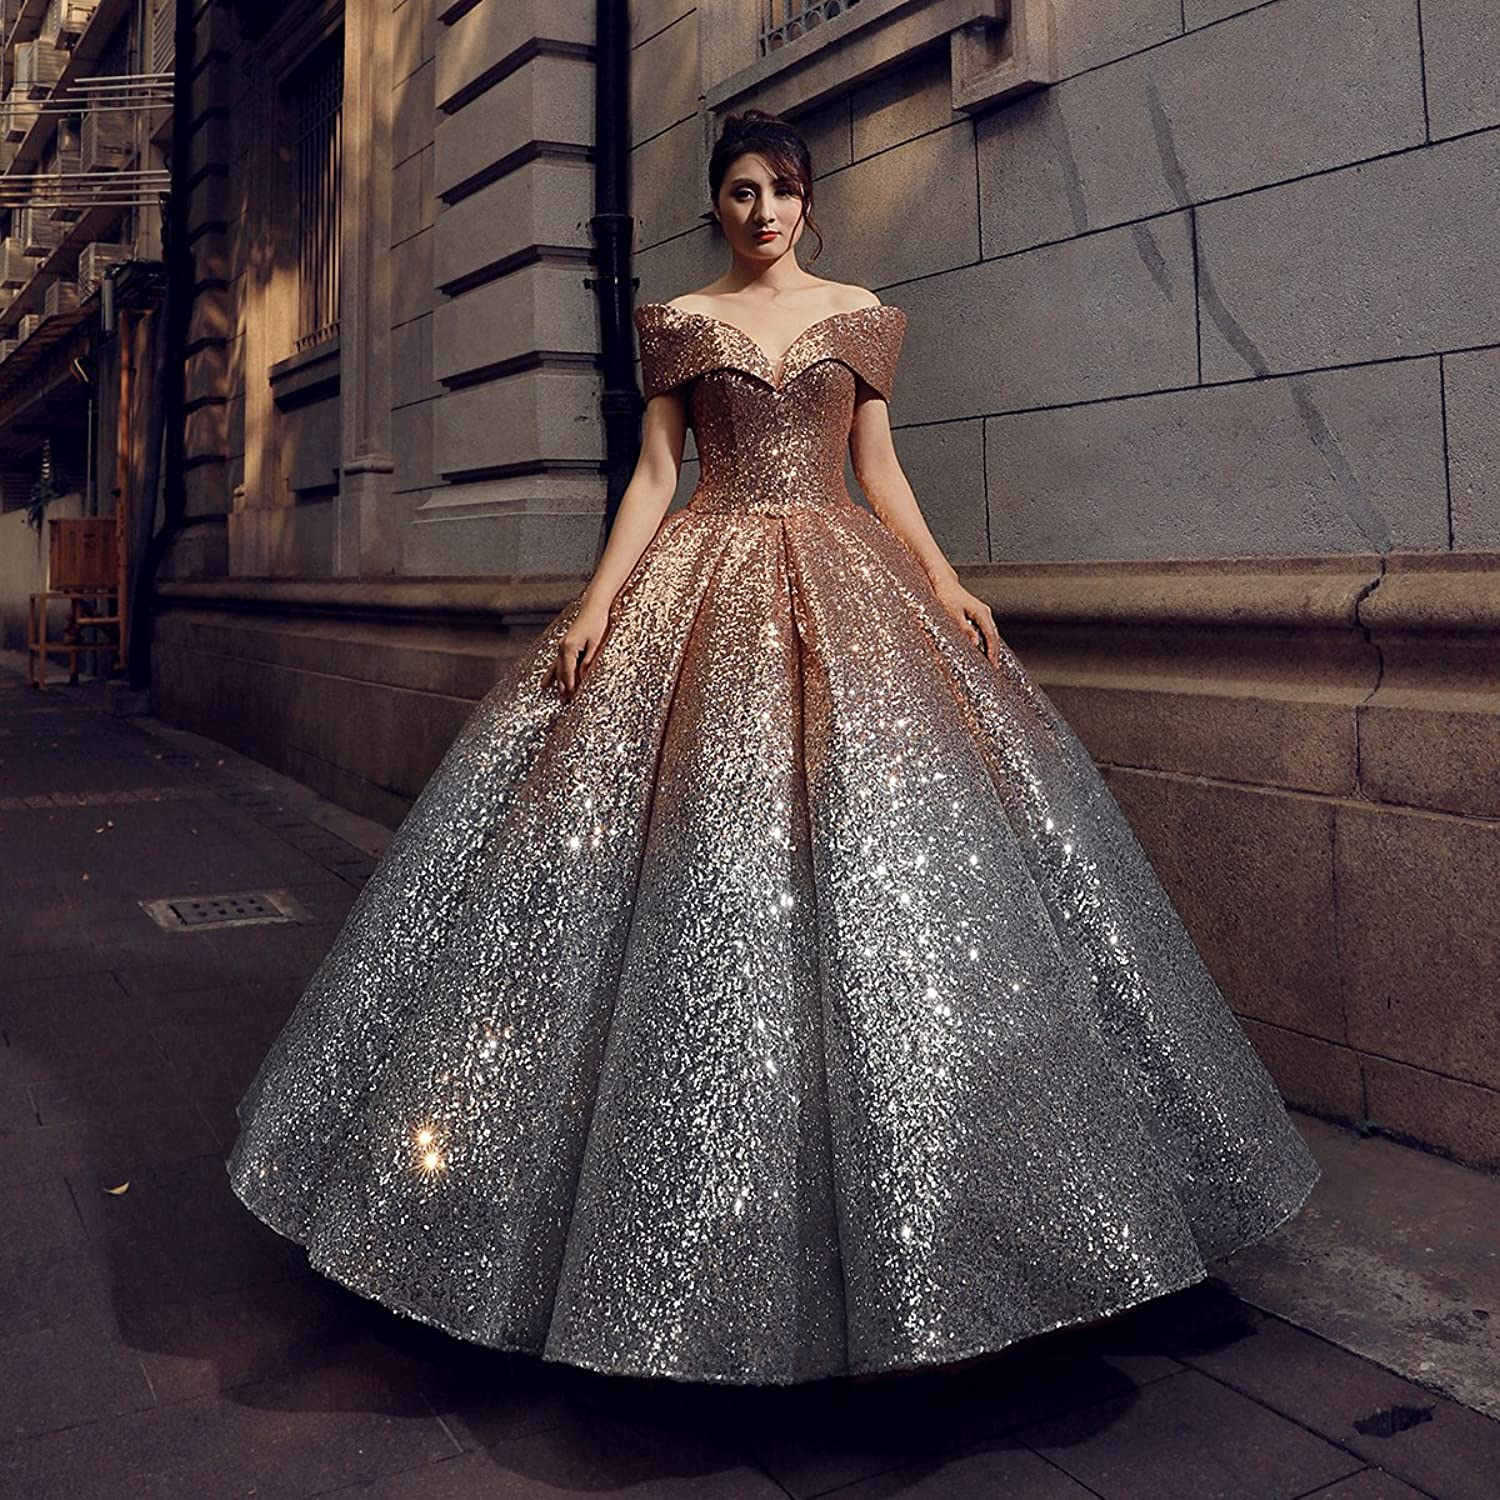 Erosebridal Sparkling Sequined Evening Dresses Gowns V Neck Cap Sleeves Ball Gown Party Dress US 14 Gold: Amazon.co.uk: Clothing